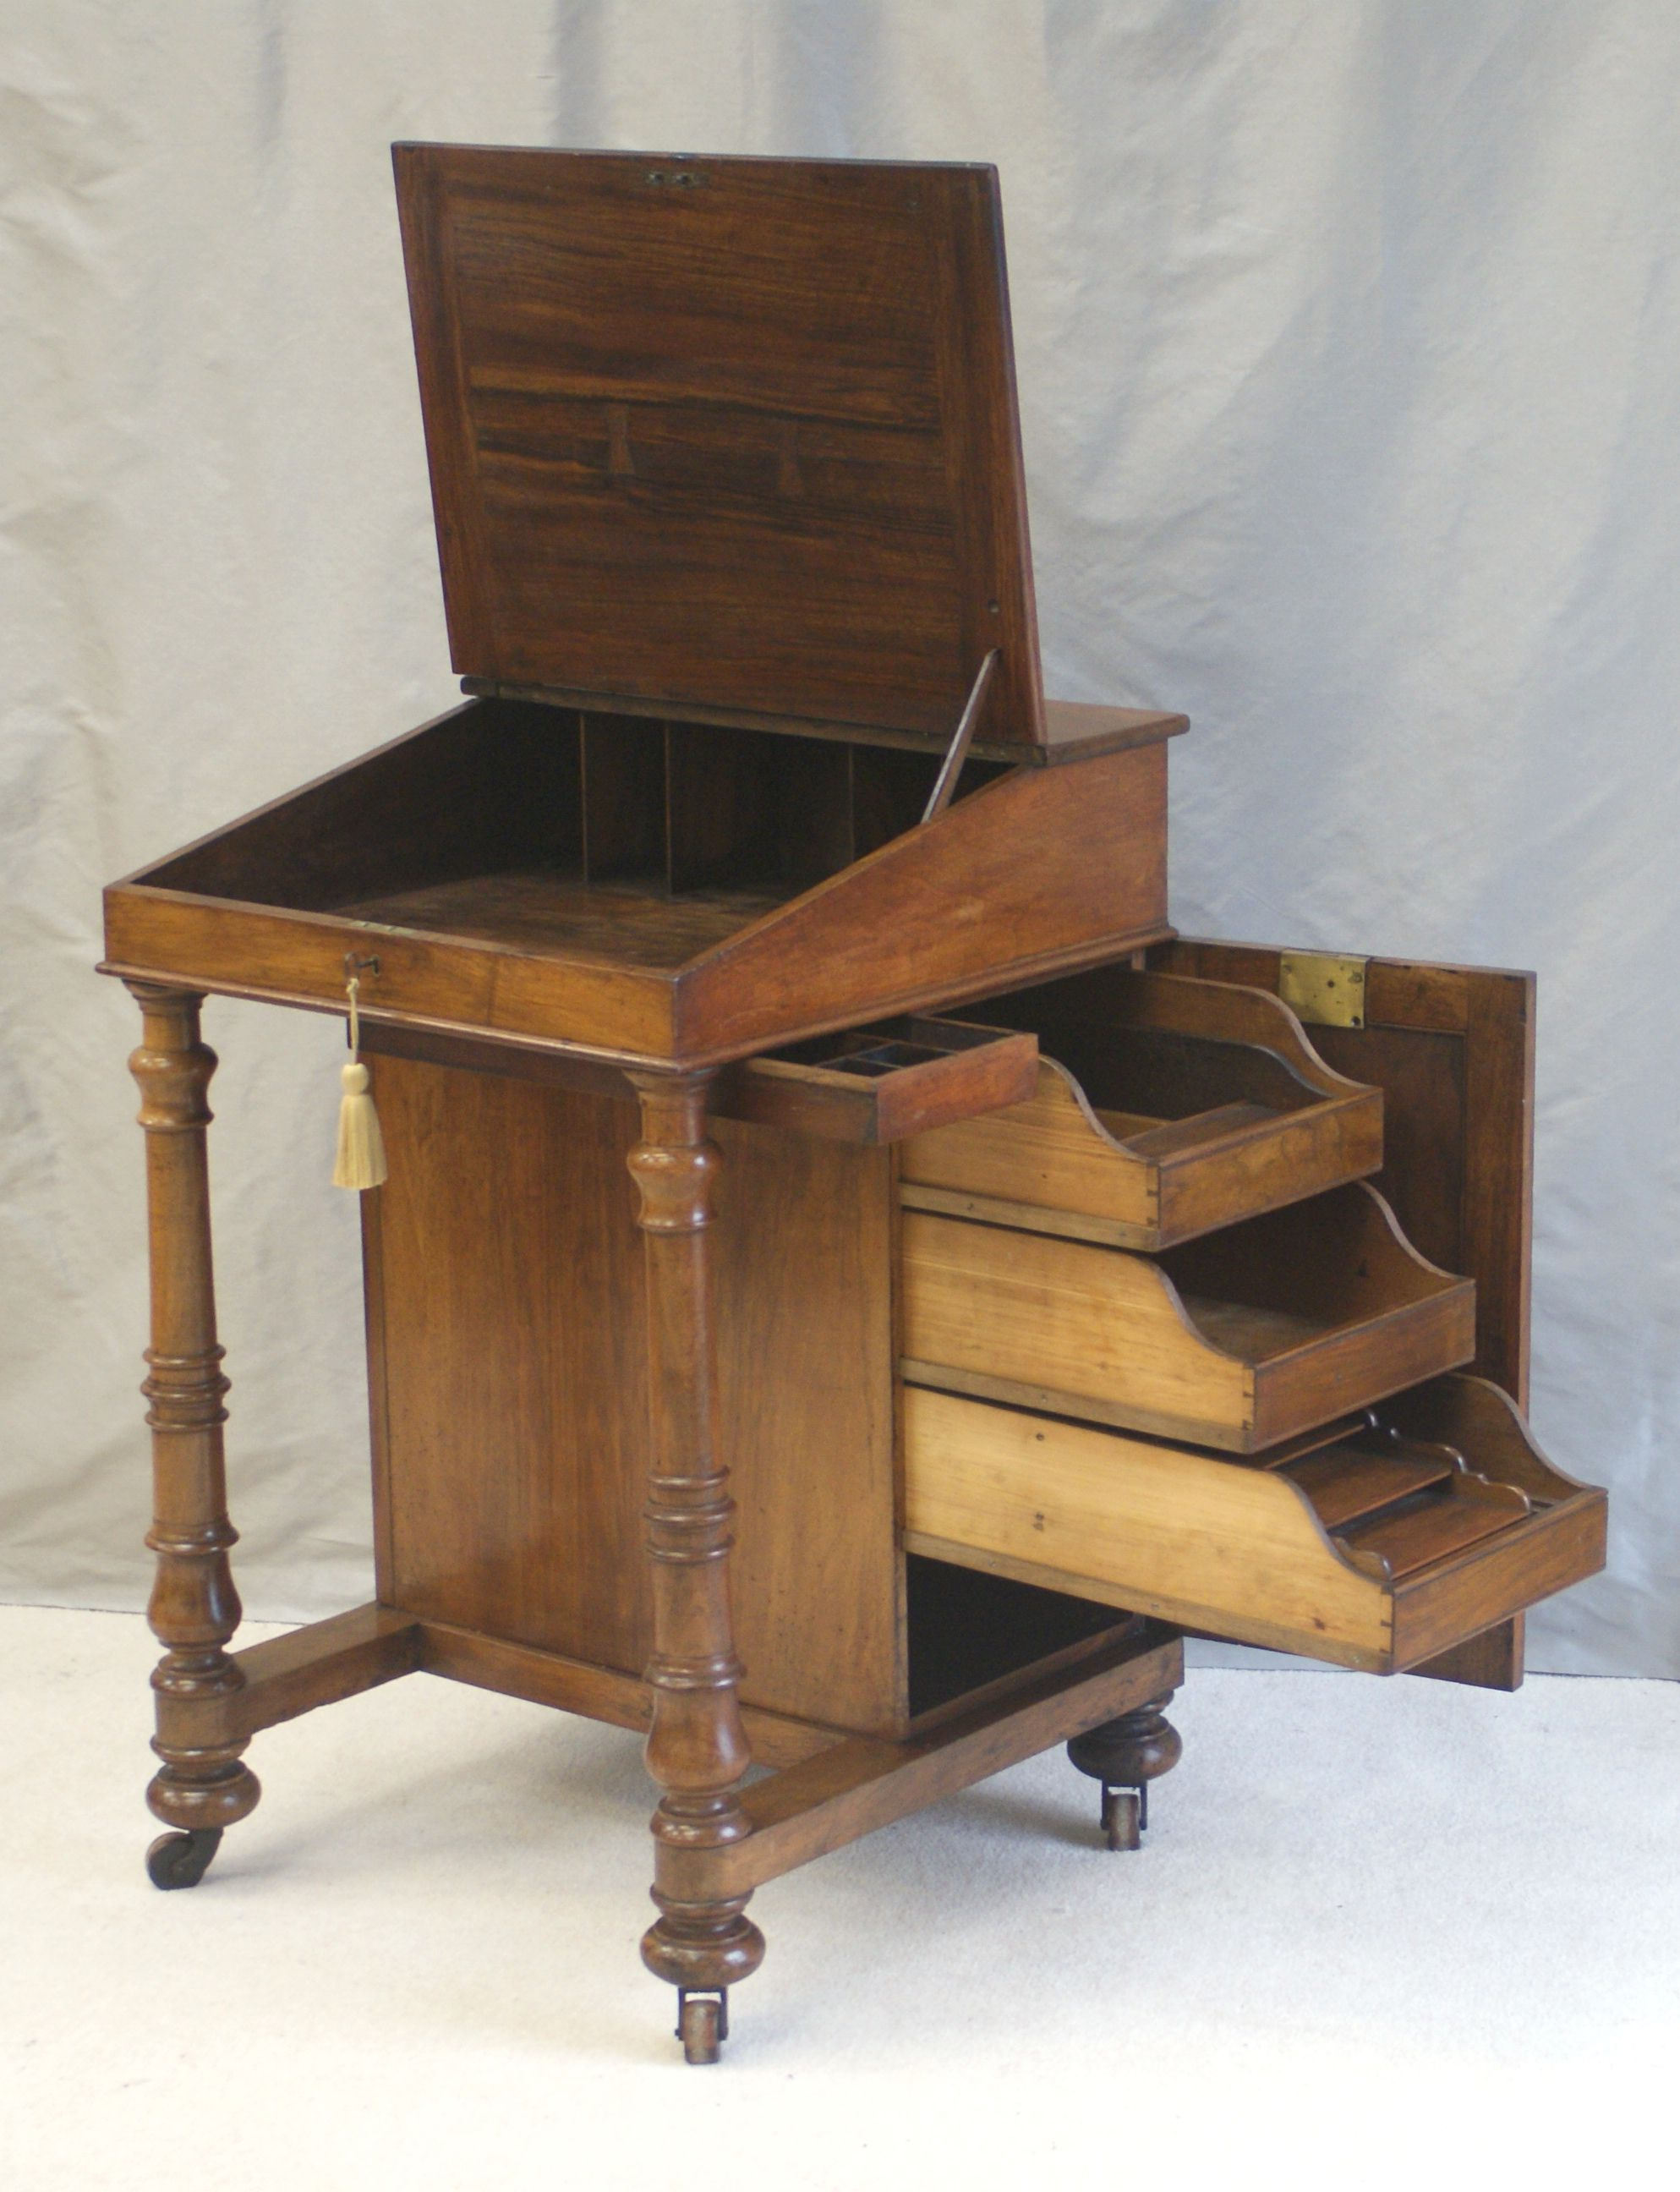 Unusual Solid Walnut Antique Davenport Writing Desk Or Clerks Cupboard Has Numerous Fully Ed